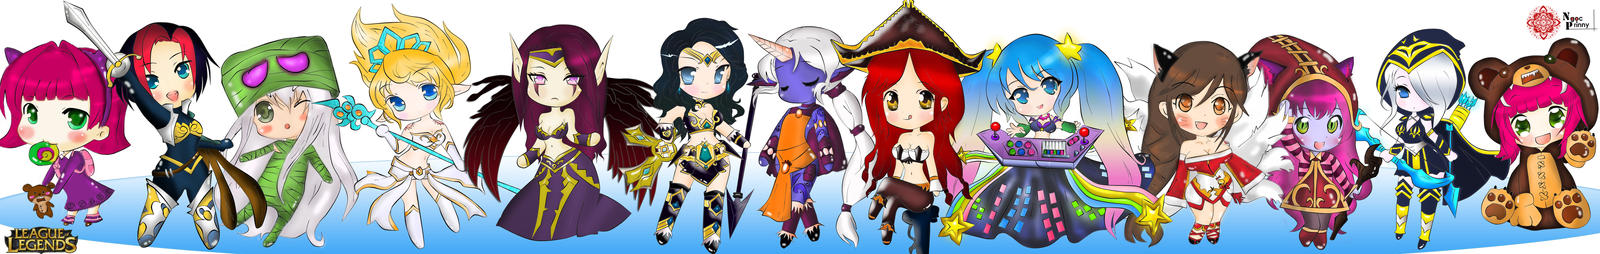 Chibi Champions From League Of Legends By Nprinny On Deviantart